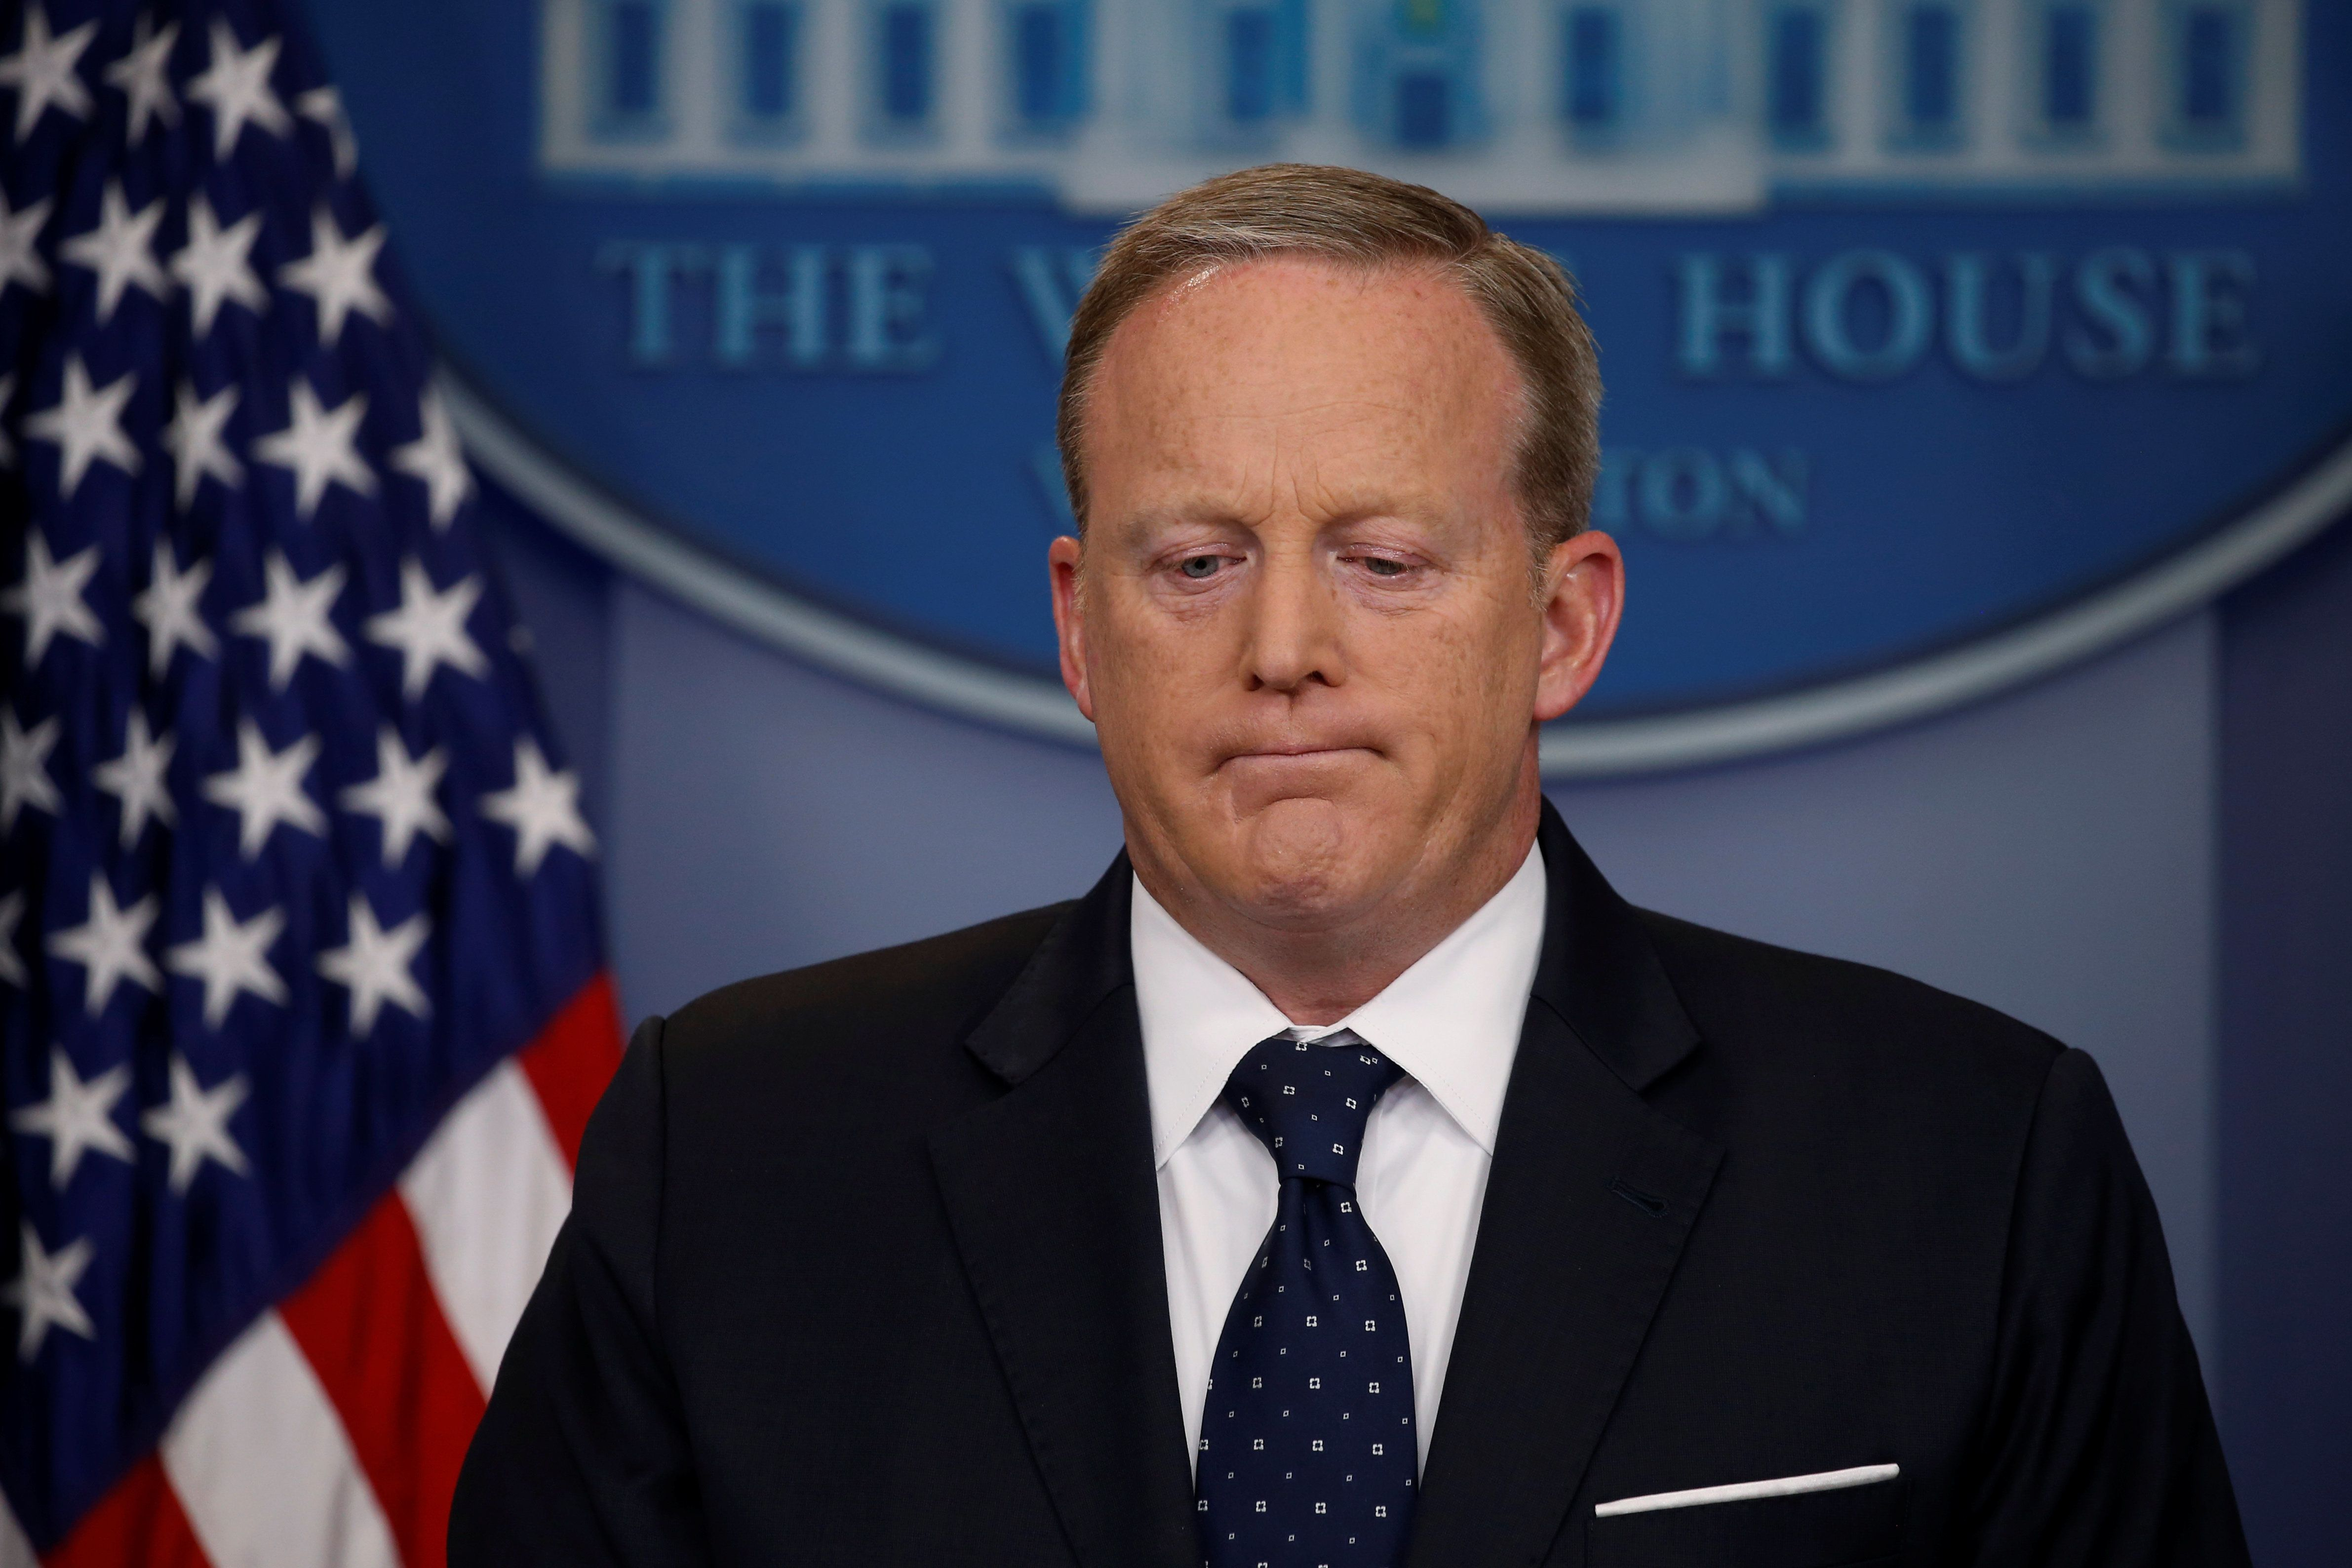 White House Press Secretary Sean Spicer reacts to a reporter's question during his daily briefing at the White House in Washington, U.S., June 20, 2017.  REUTERS/Jonathan Ernst